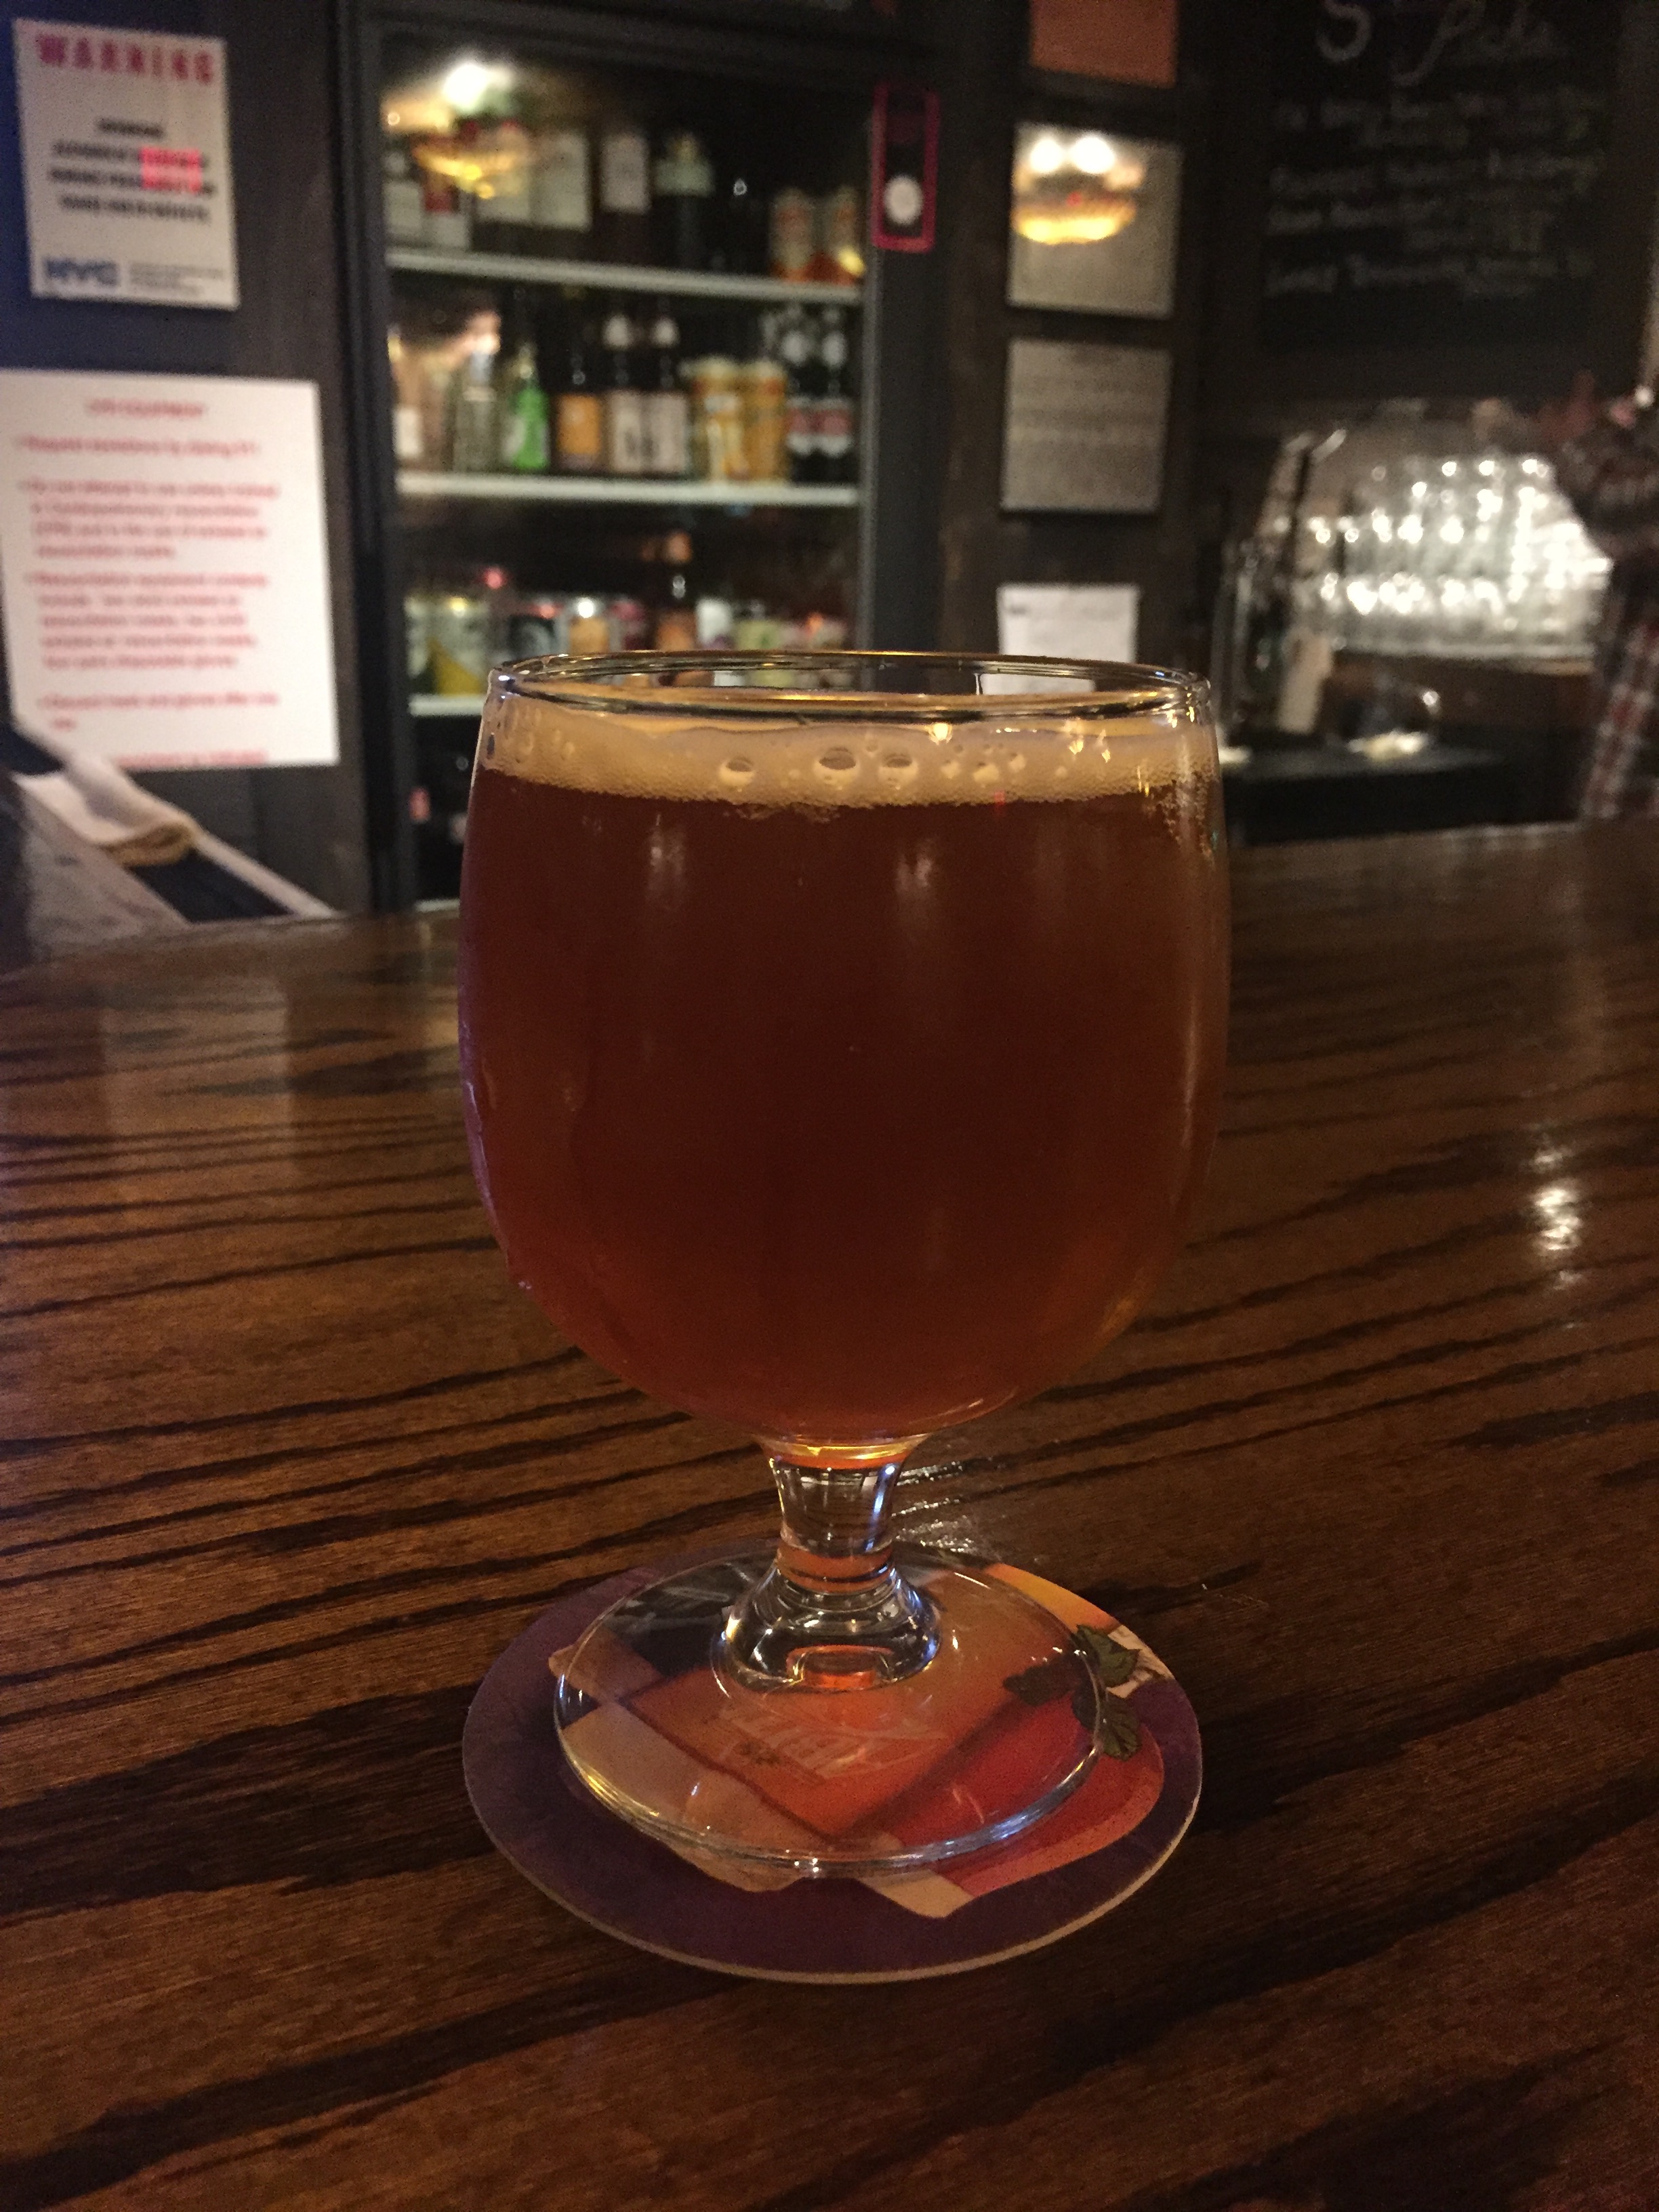 The Great Pumpkin Ale at Arts and Crafts